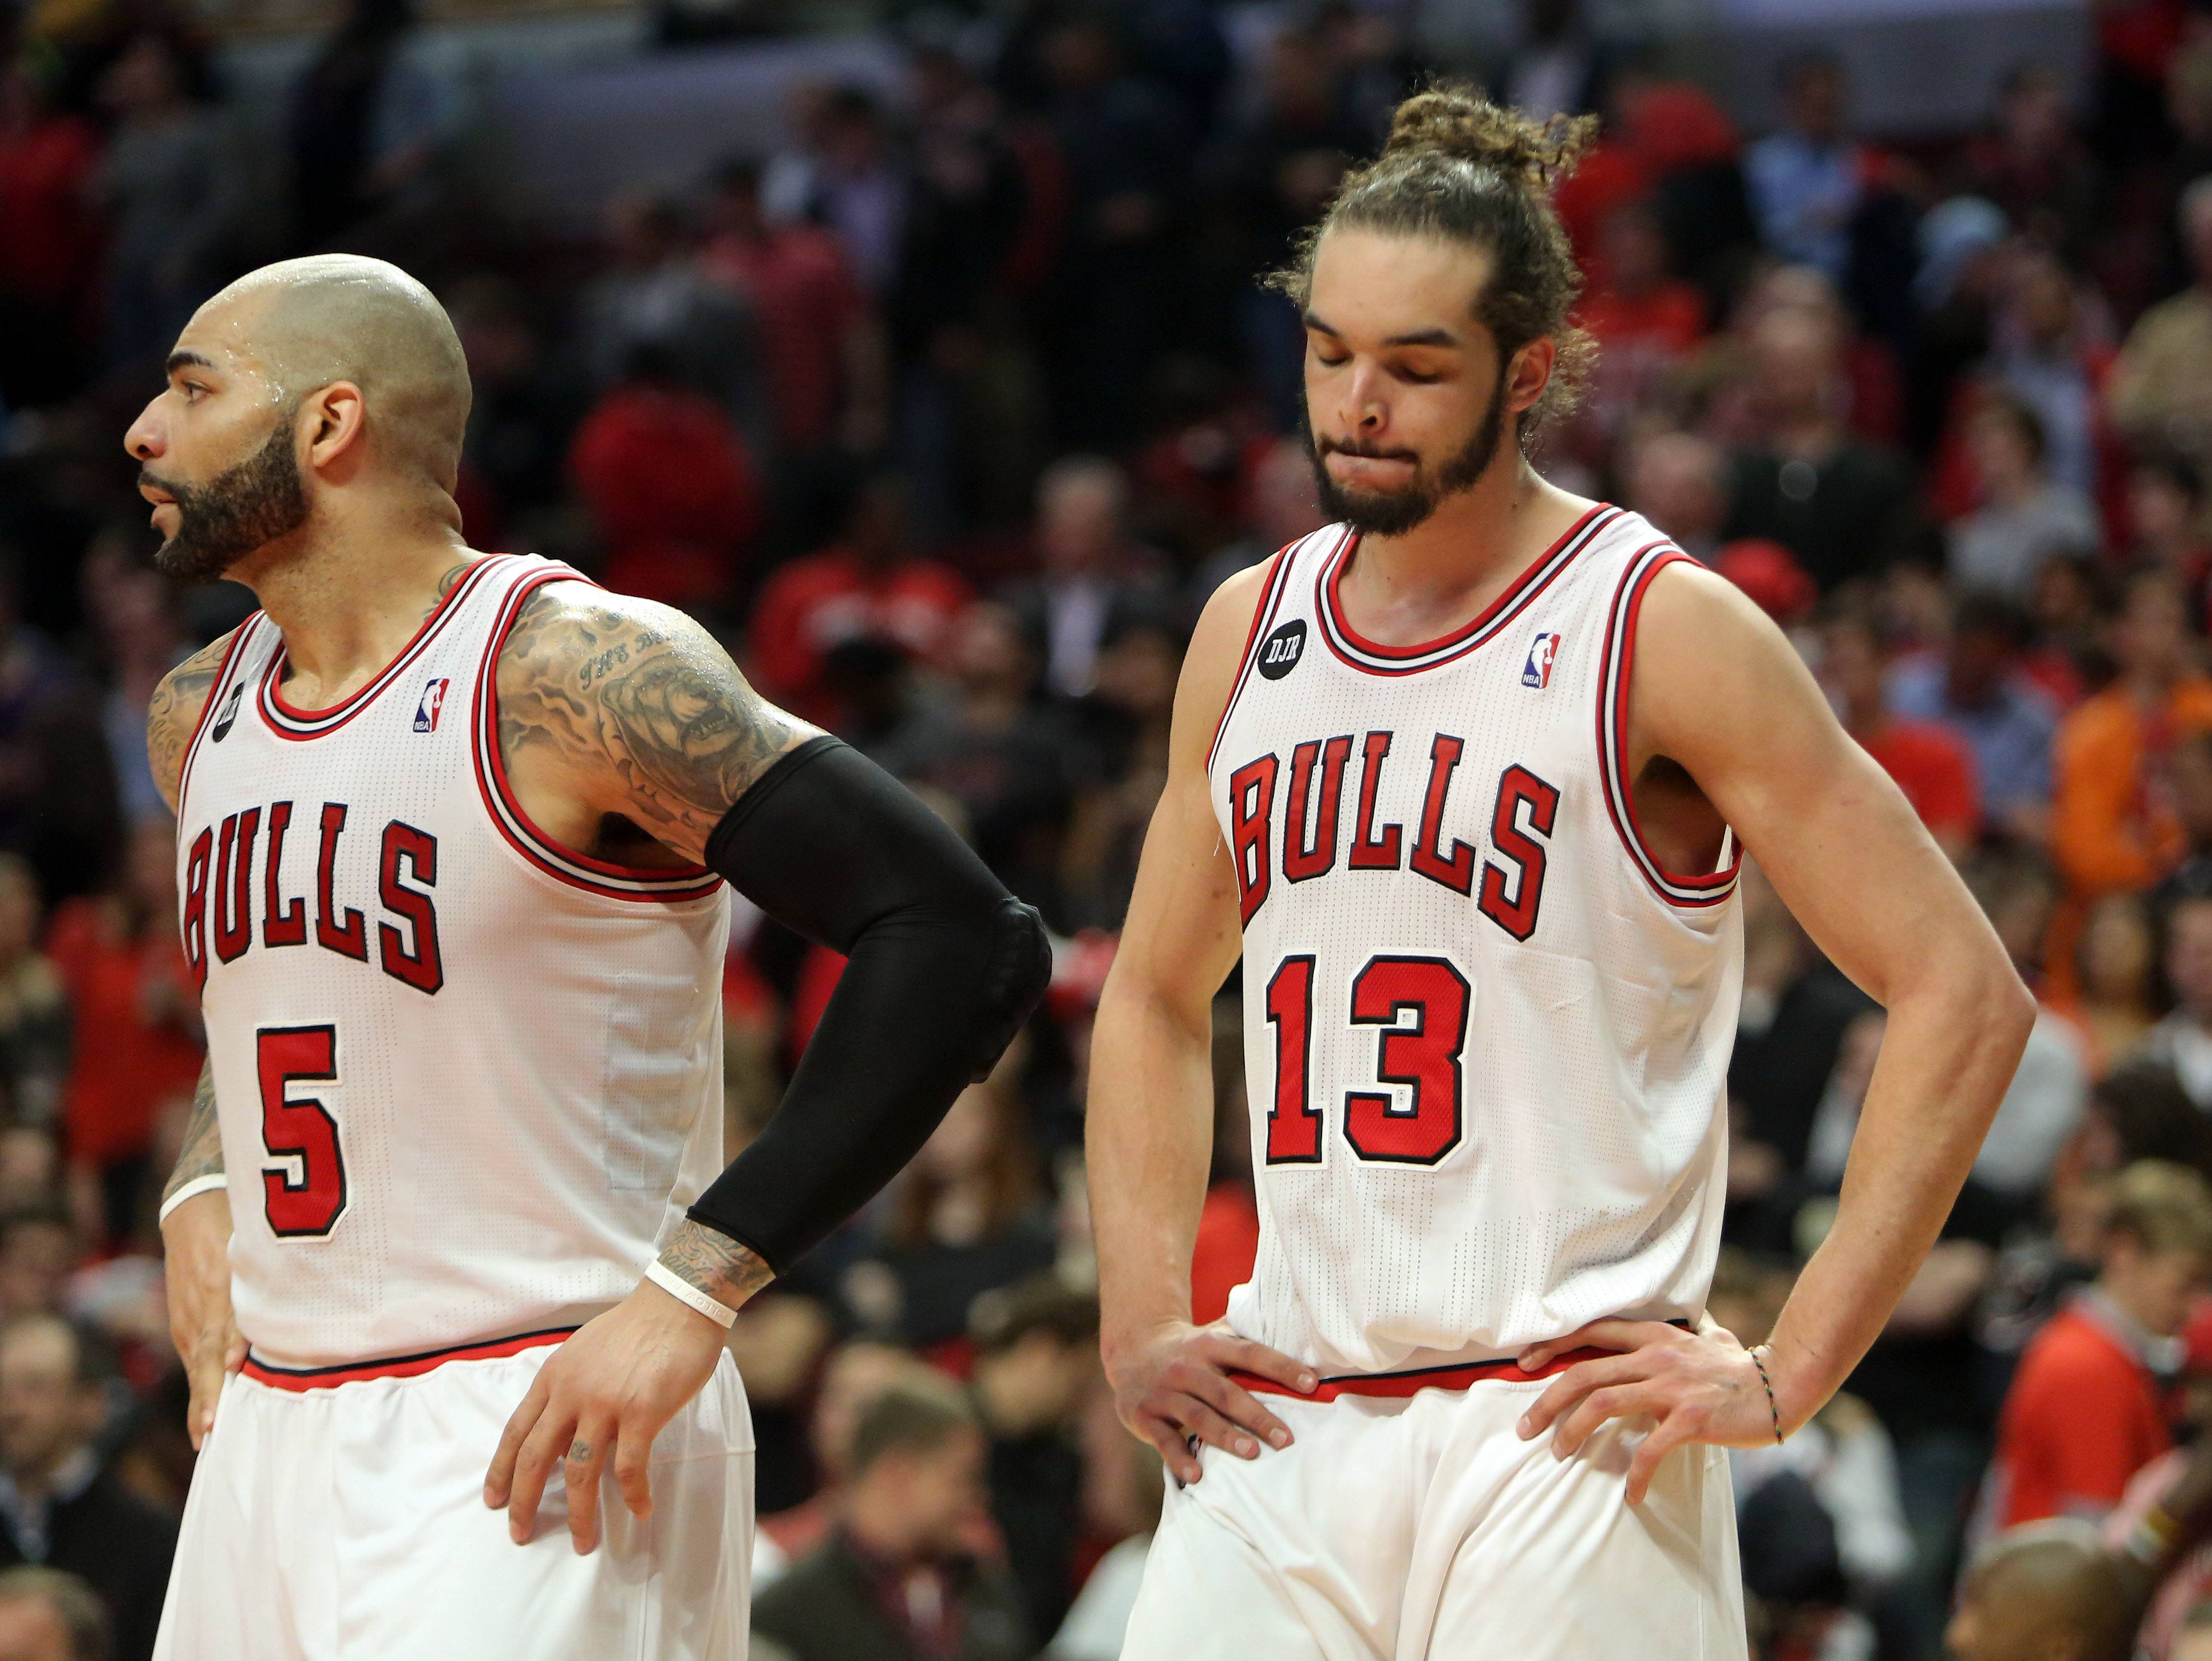 Chicago Bulls forward Carlos Boozer and Chicago Bulls center Joakim Noah react during the Bulls 75-69 loss in game five of first-round of the NBA playoffs Tuesday night at the United Center.